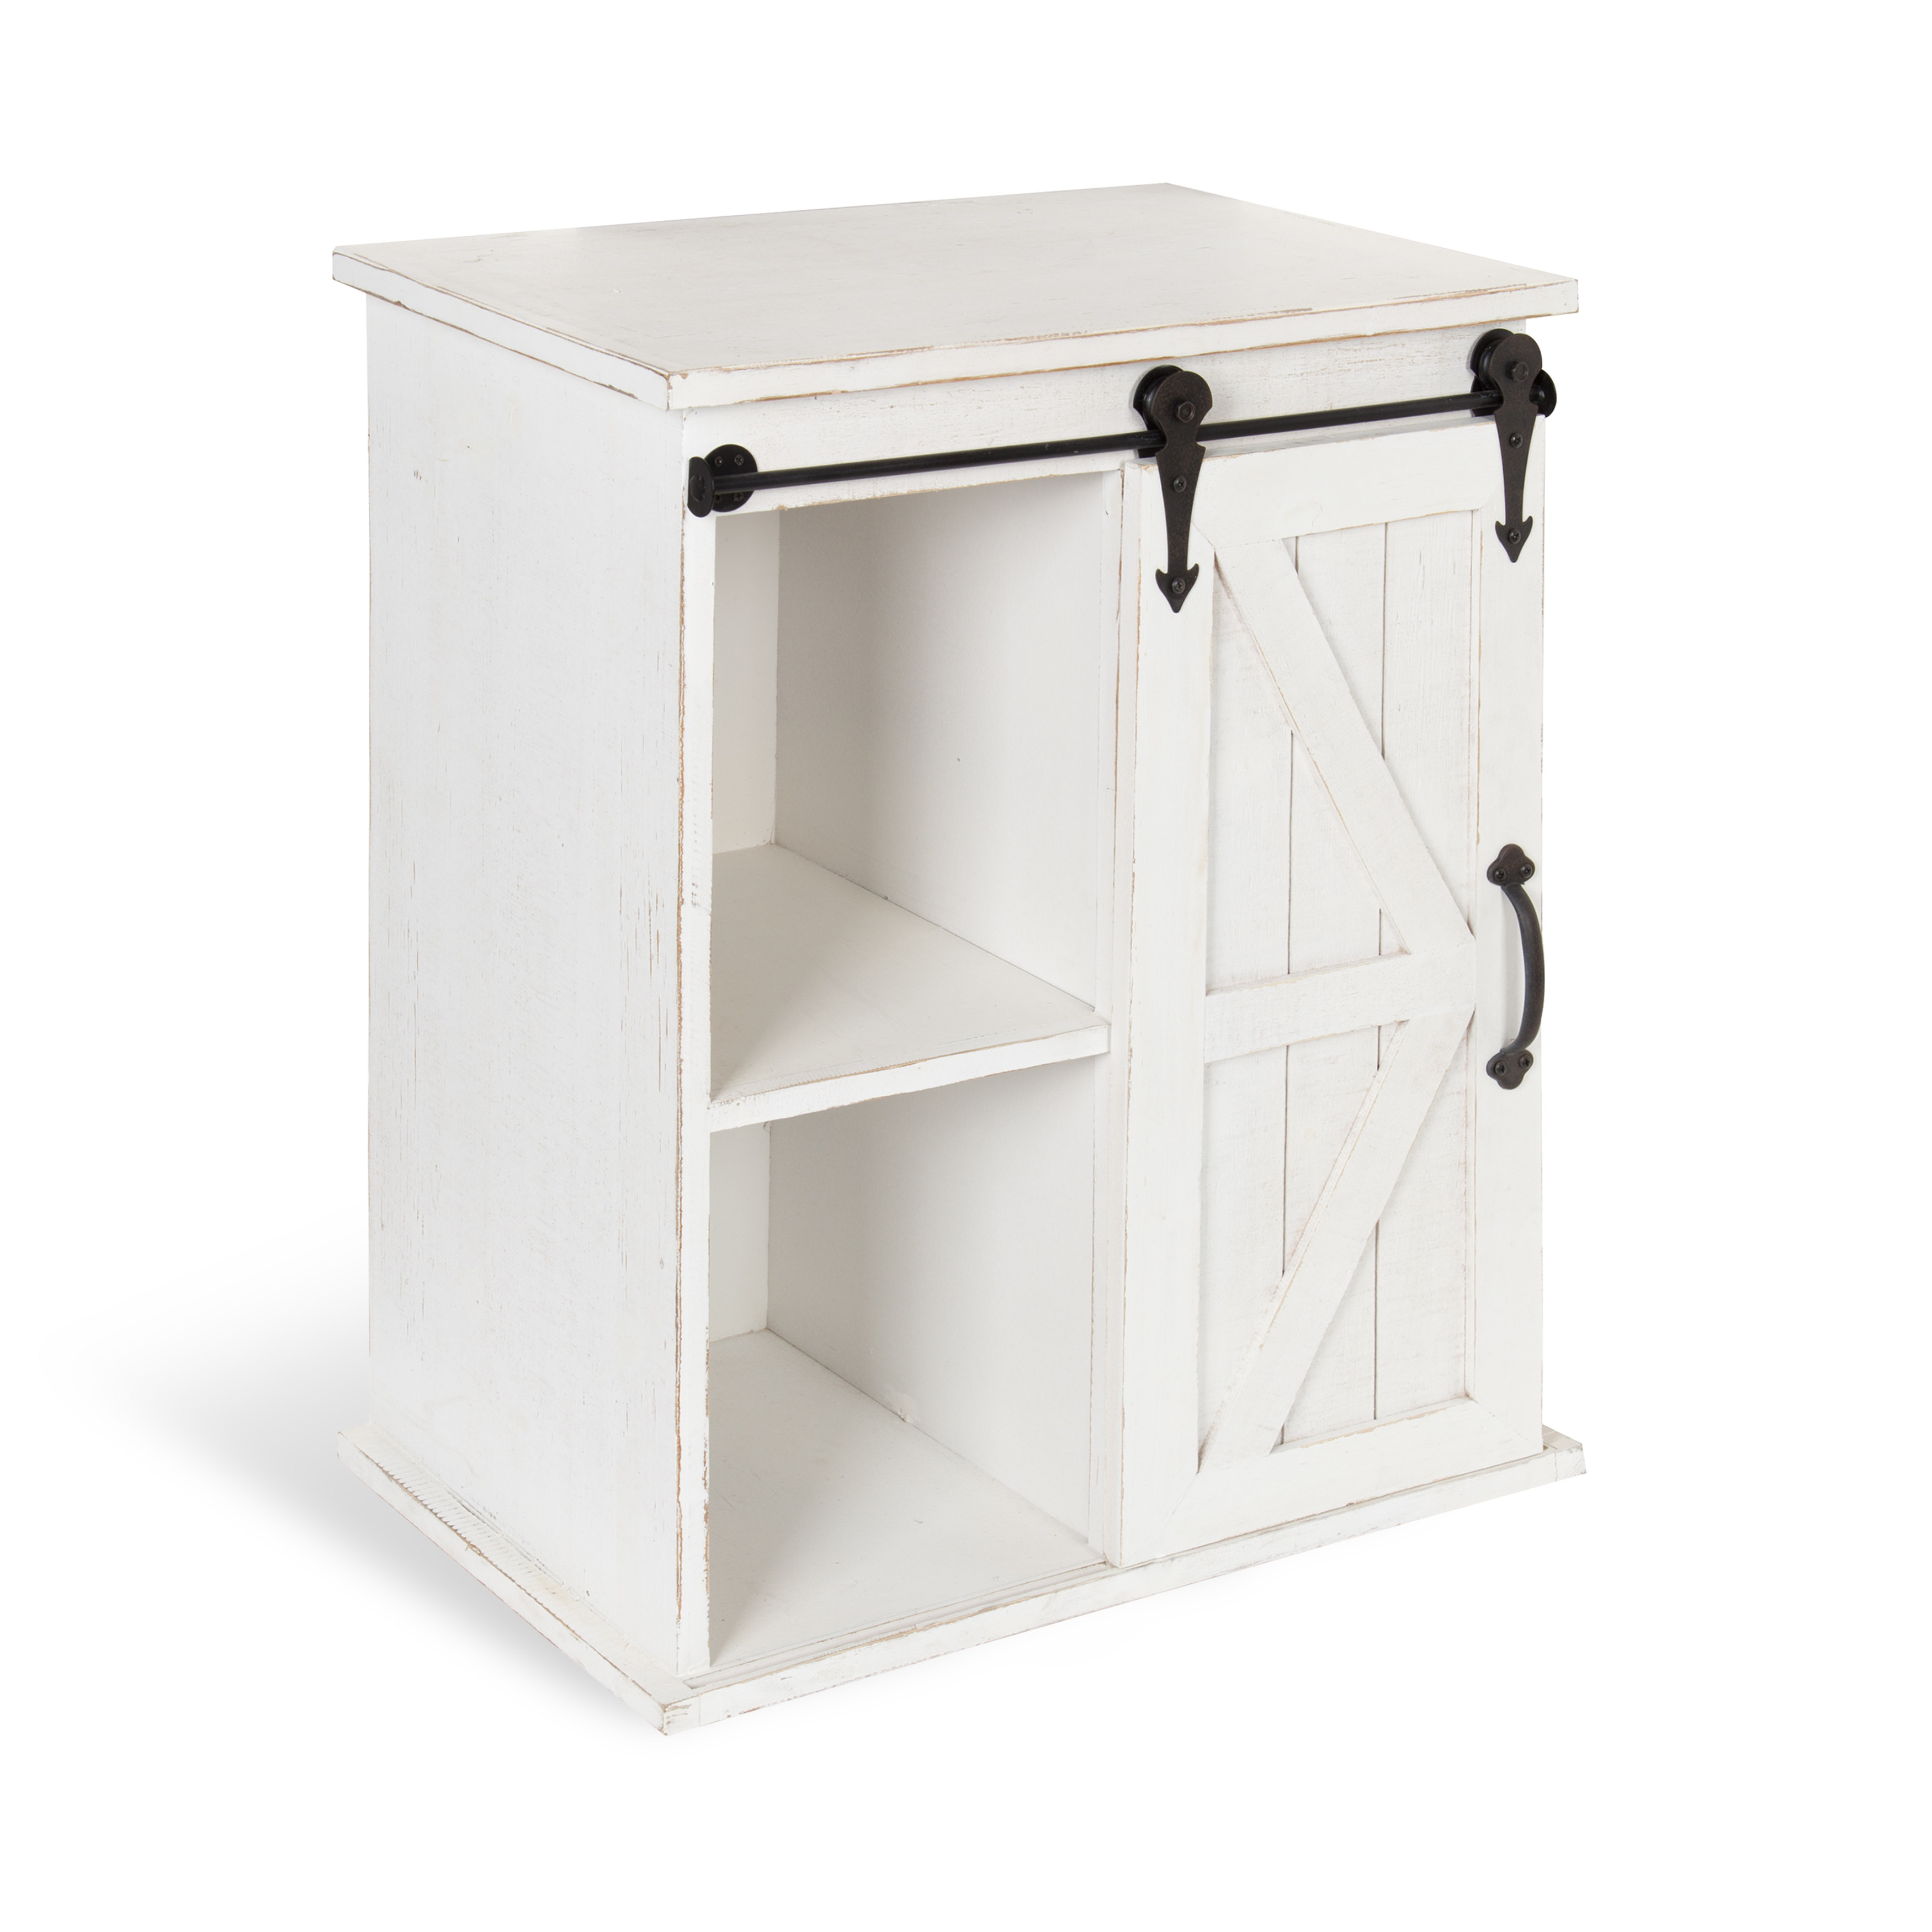 kate and laurel cates wooden freestanding storage cabinet side accent table with barn door sliding antique white finish gray round end painted tables living room bulk tablecloths